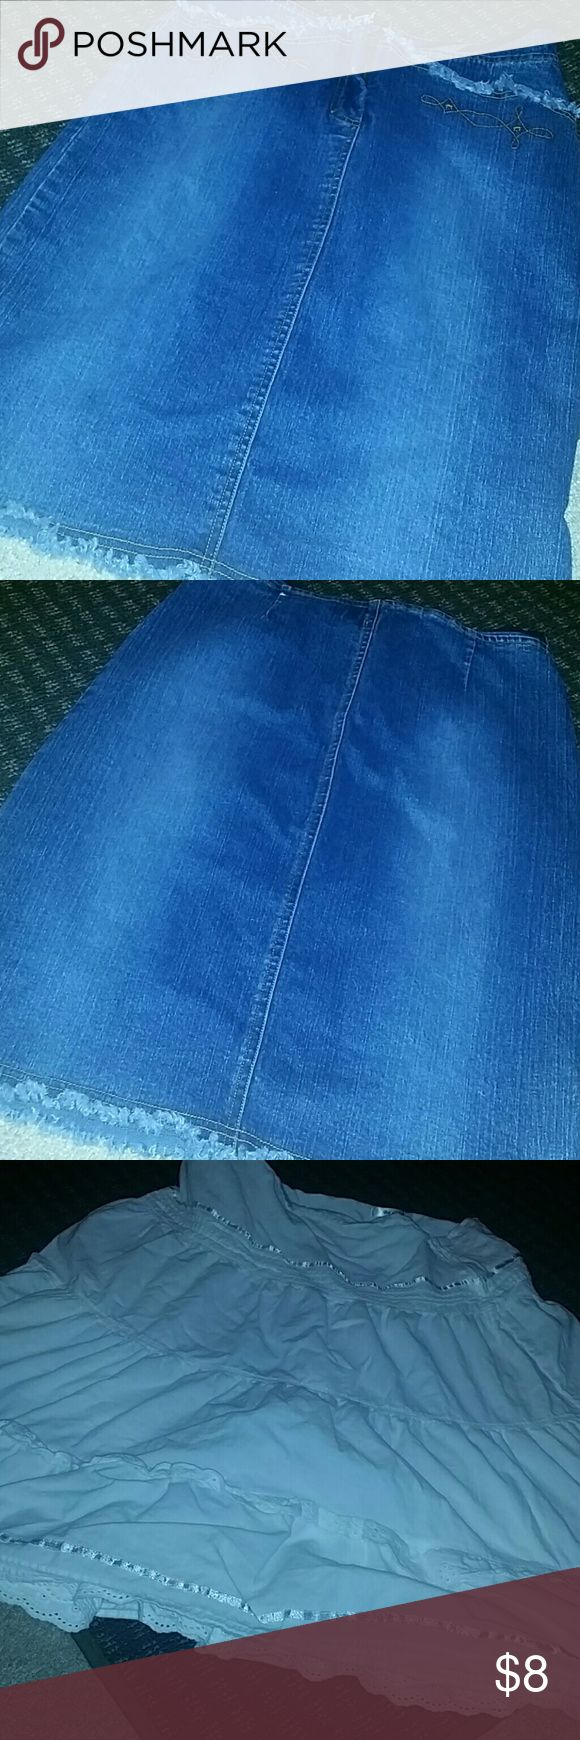 Joyce Jeans Ladies Skirt Buy one get one free  White skirt is free if you buy blue jean skirt  White skirt is either large or extra large brand is be cool Joyce Jeans Skirts